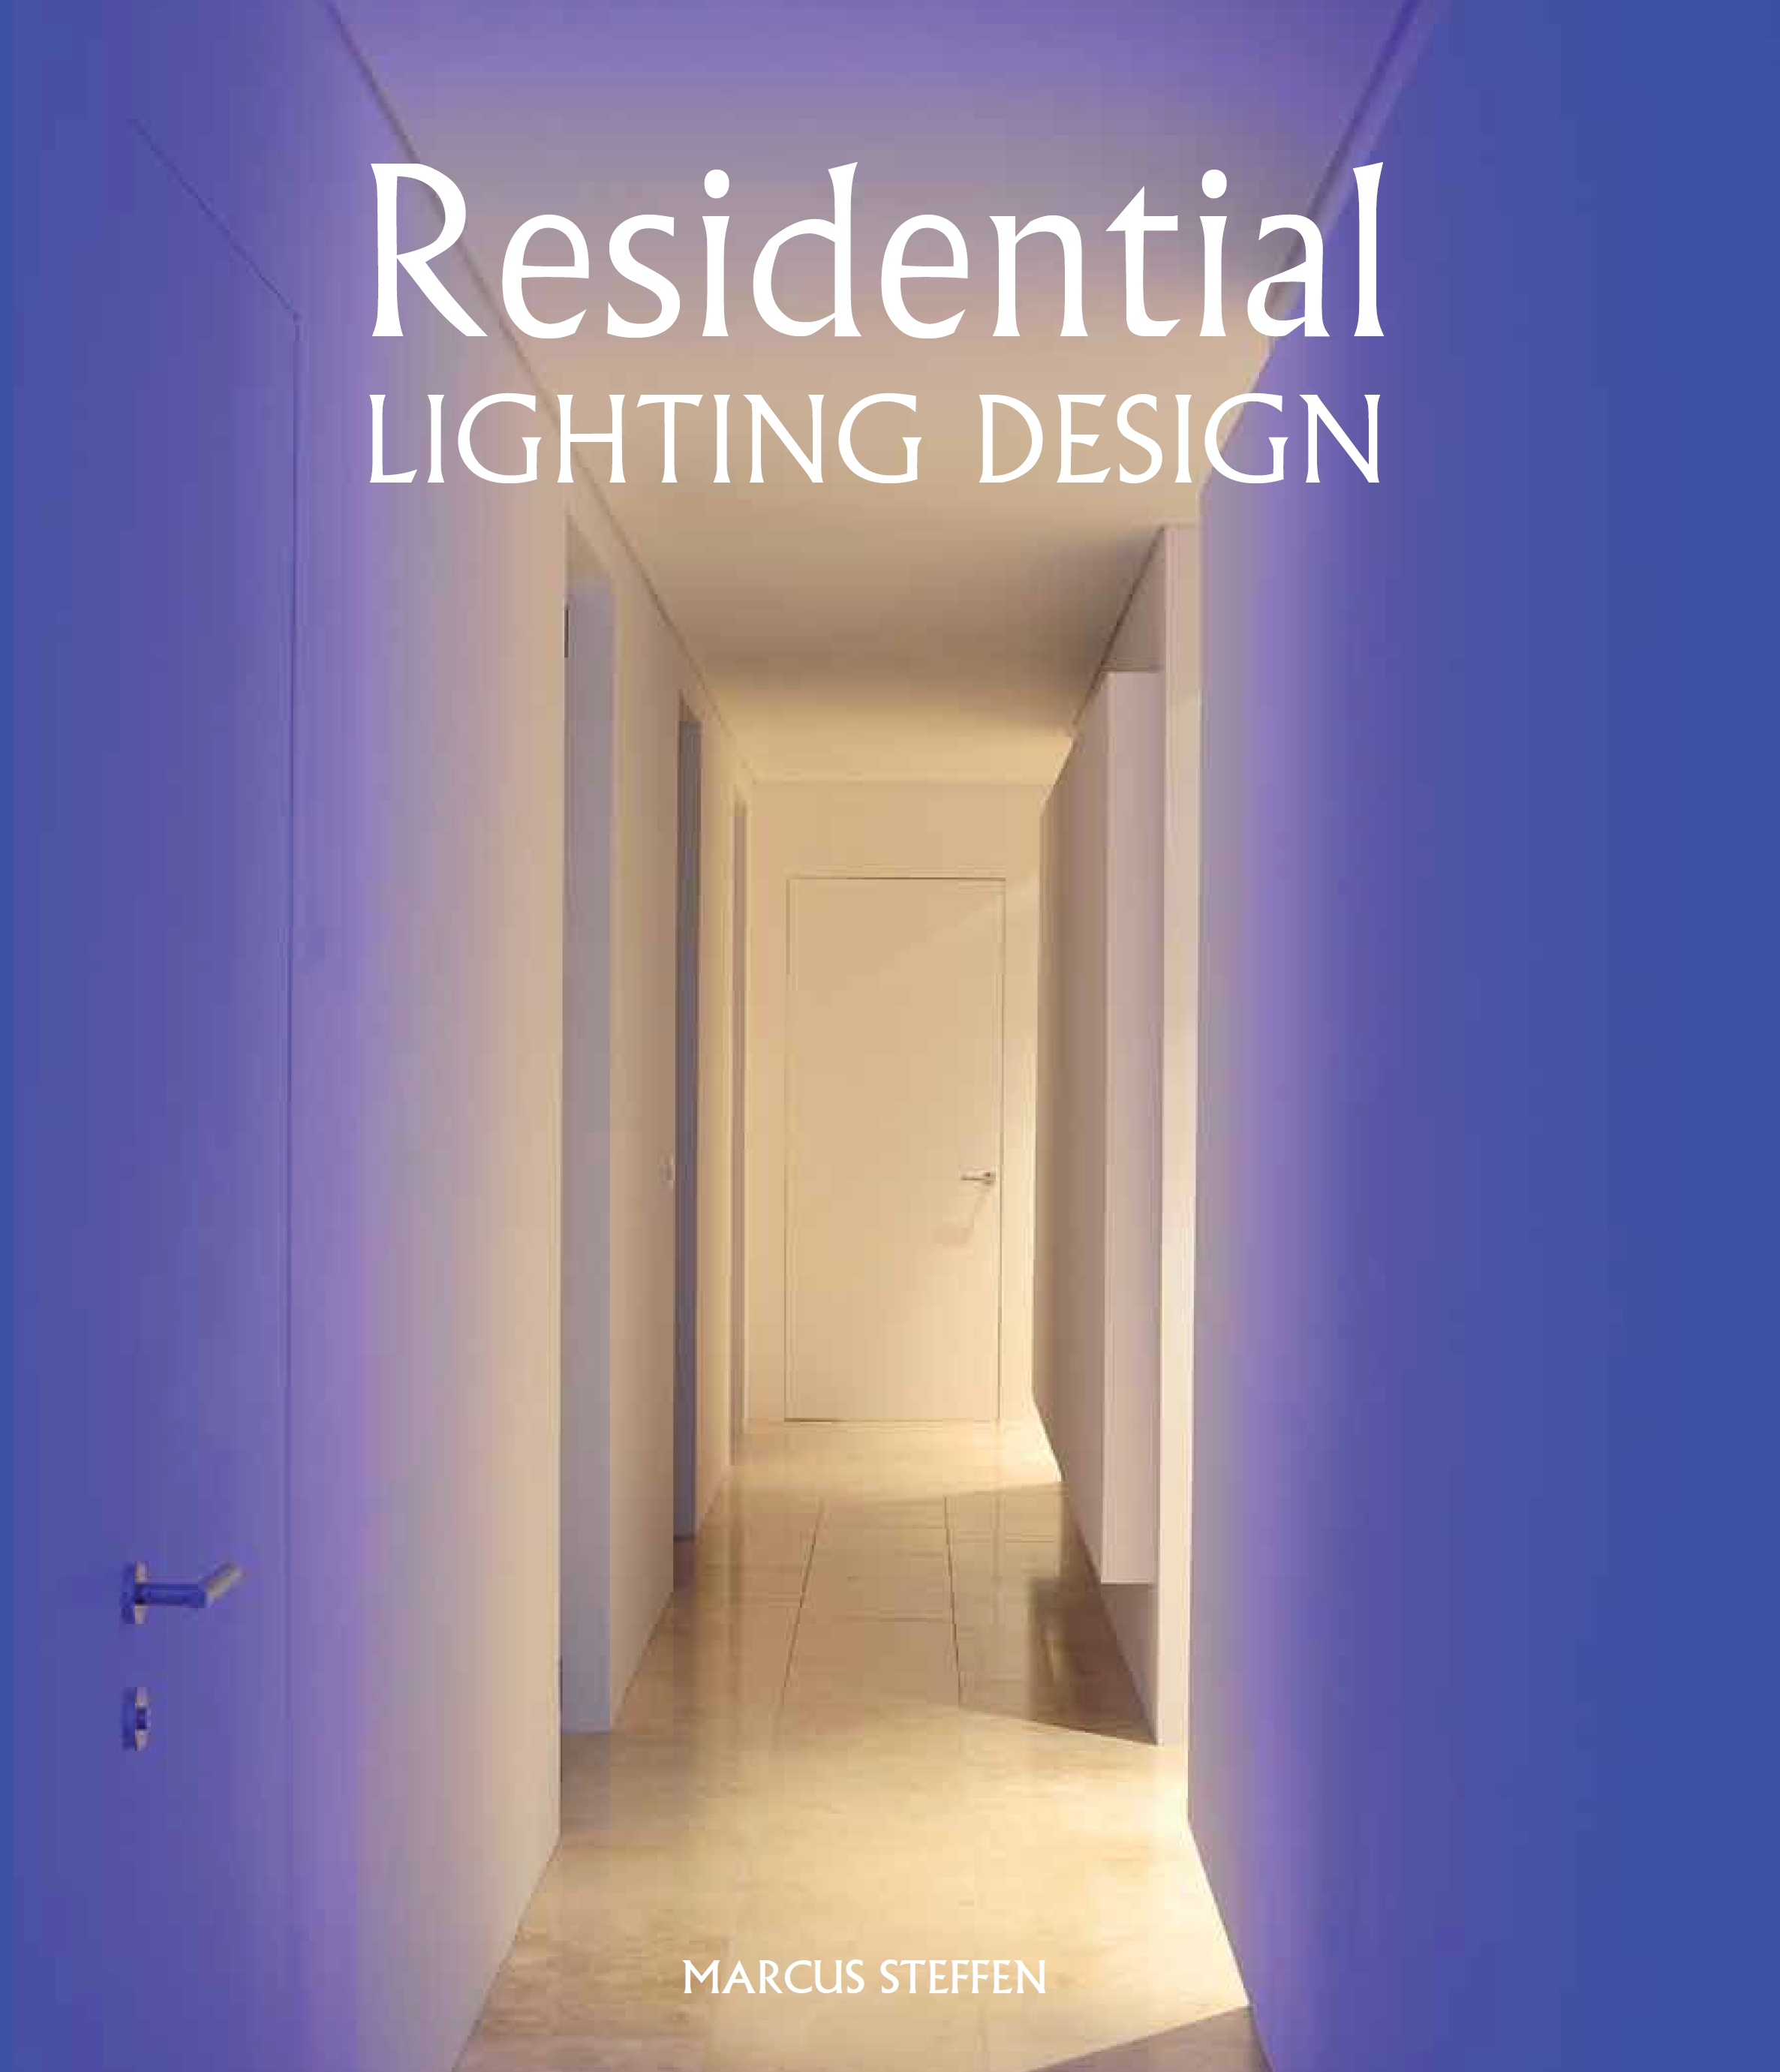 Residential Lighting Design - Residential Lighting Design, written by Marcus Steffen, gives a comprehensive guide to lighting your home. It provide practical tips and excellent technical advice on how to start designing with light.